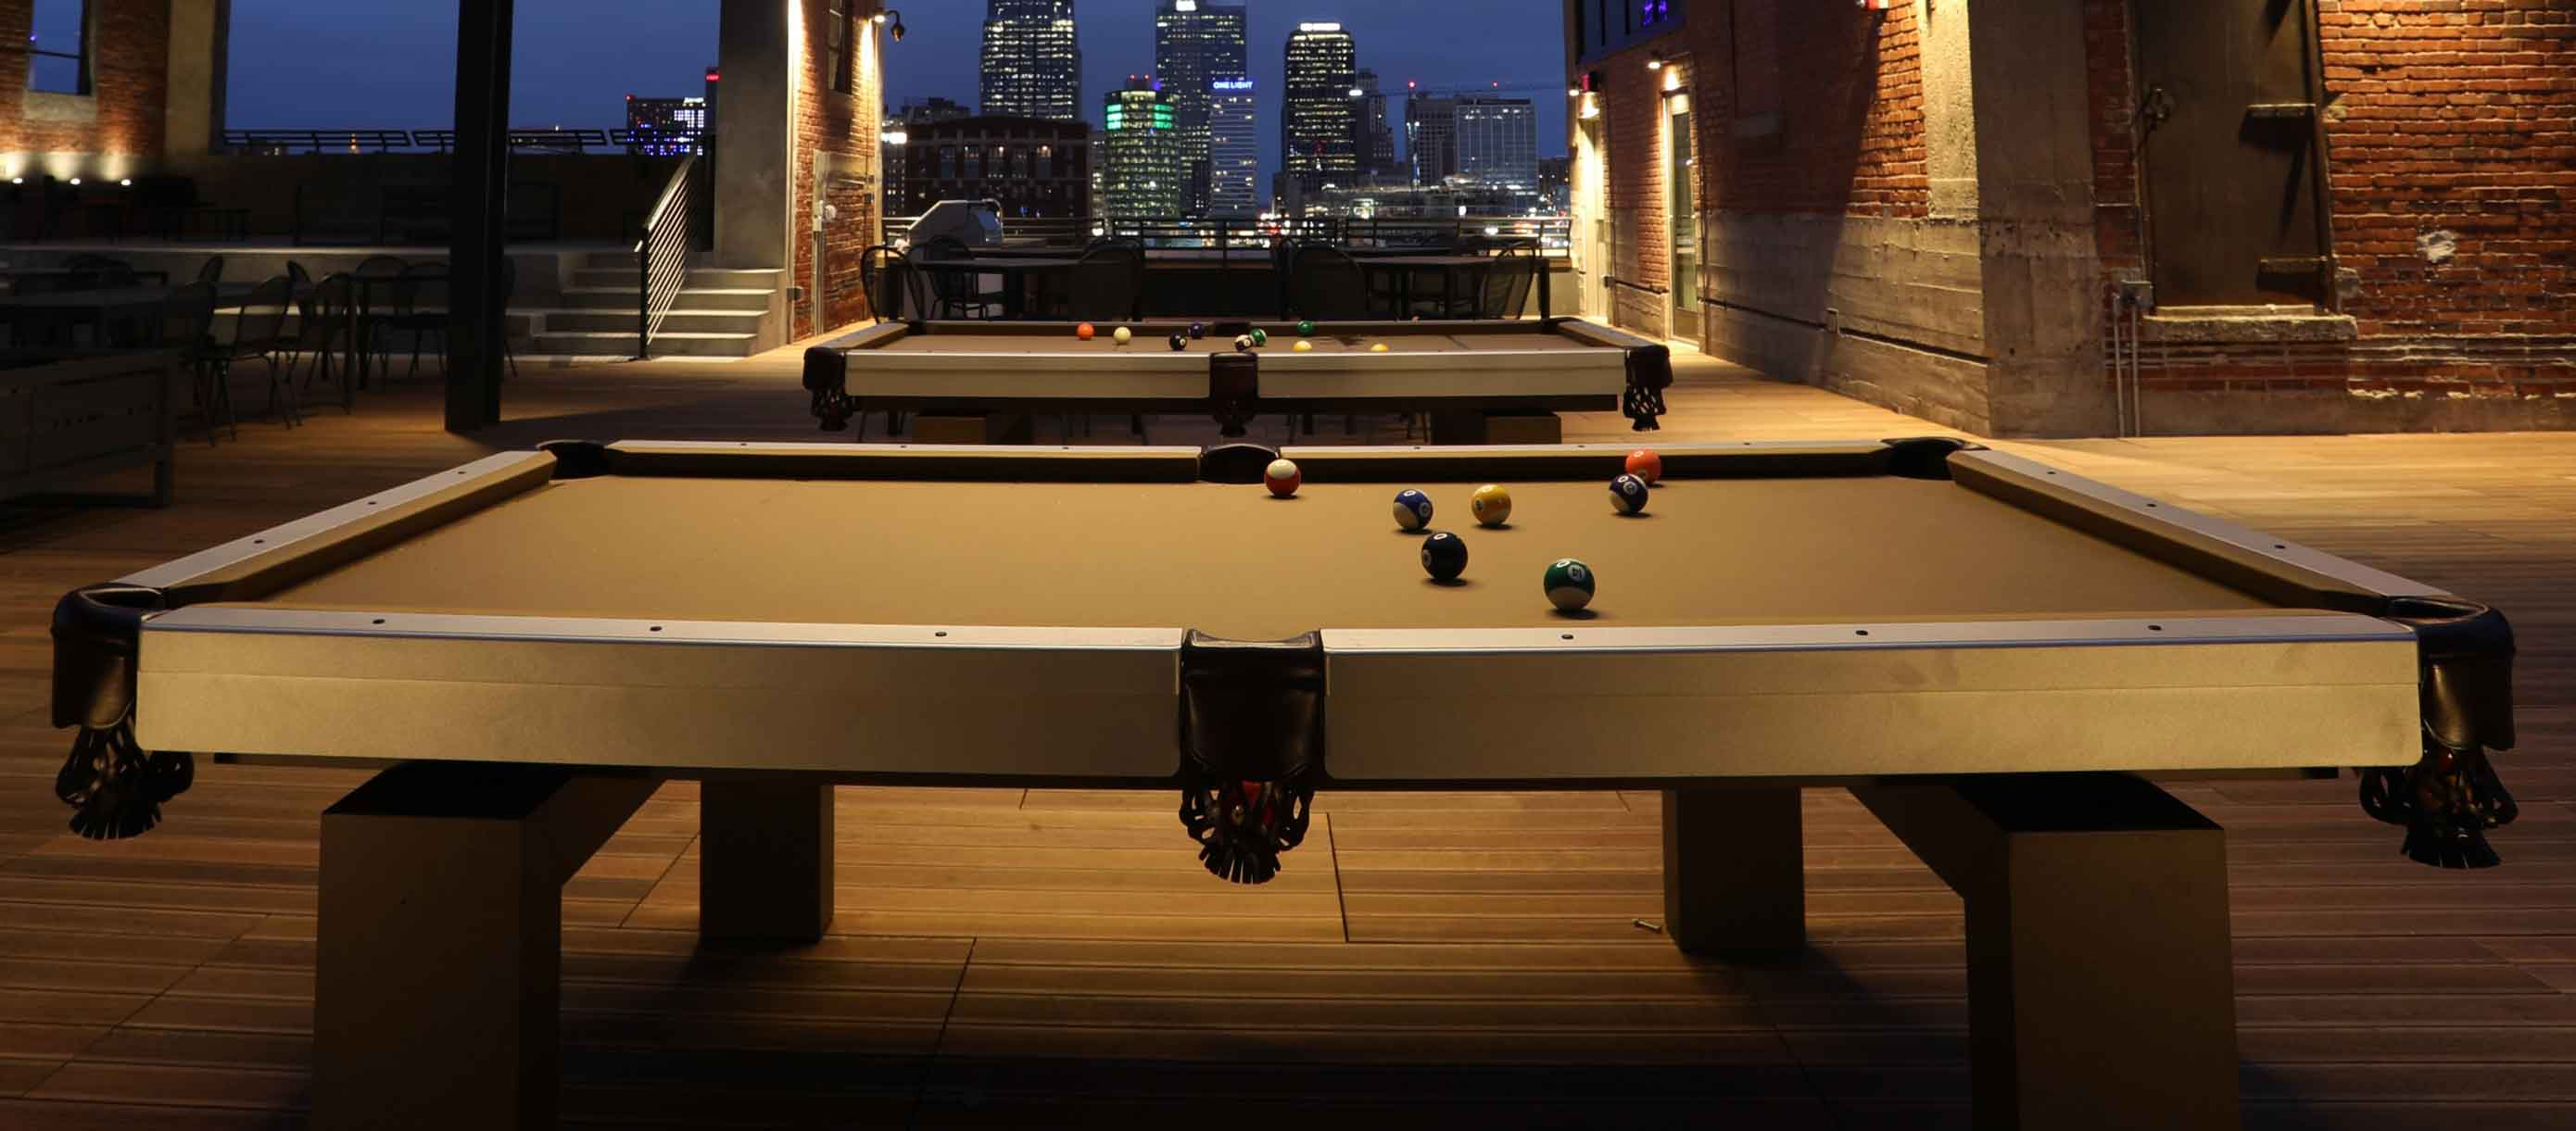 Oasis custom outdoor pool table by R&R Outdoors All Weather Billiards on rooftop